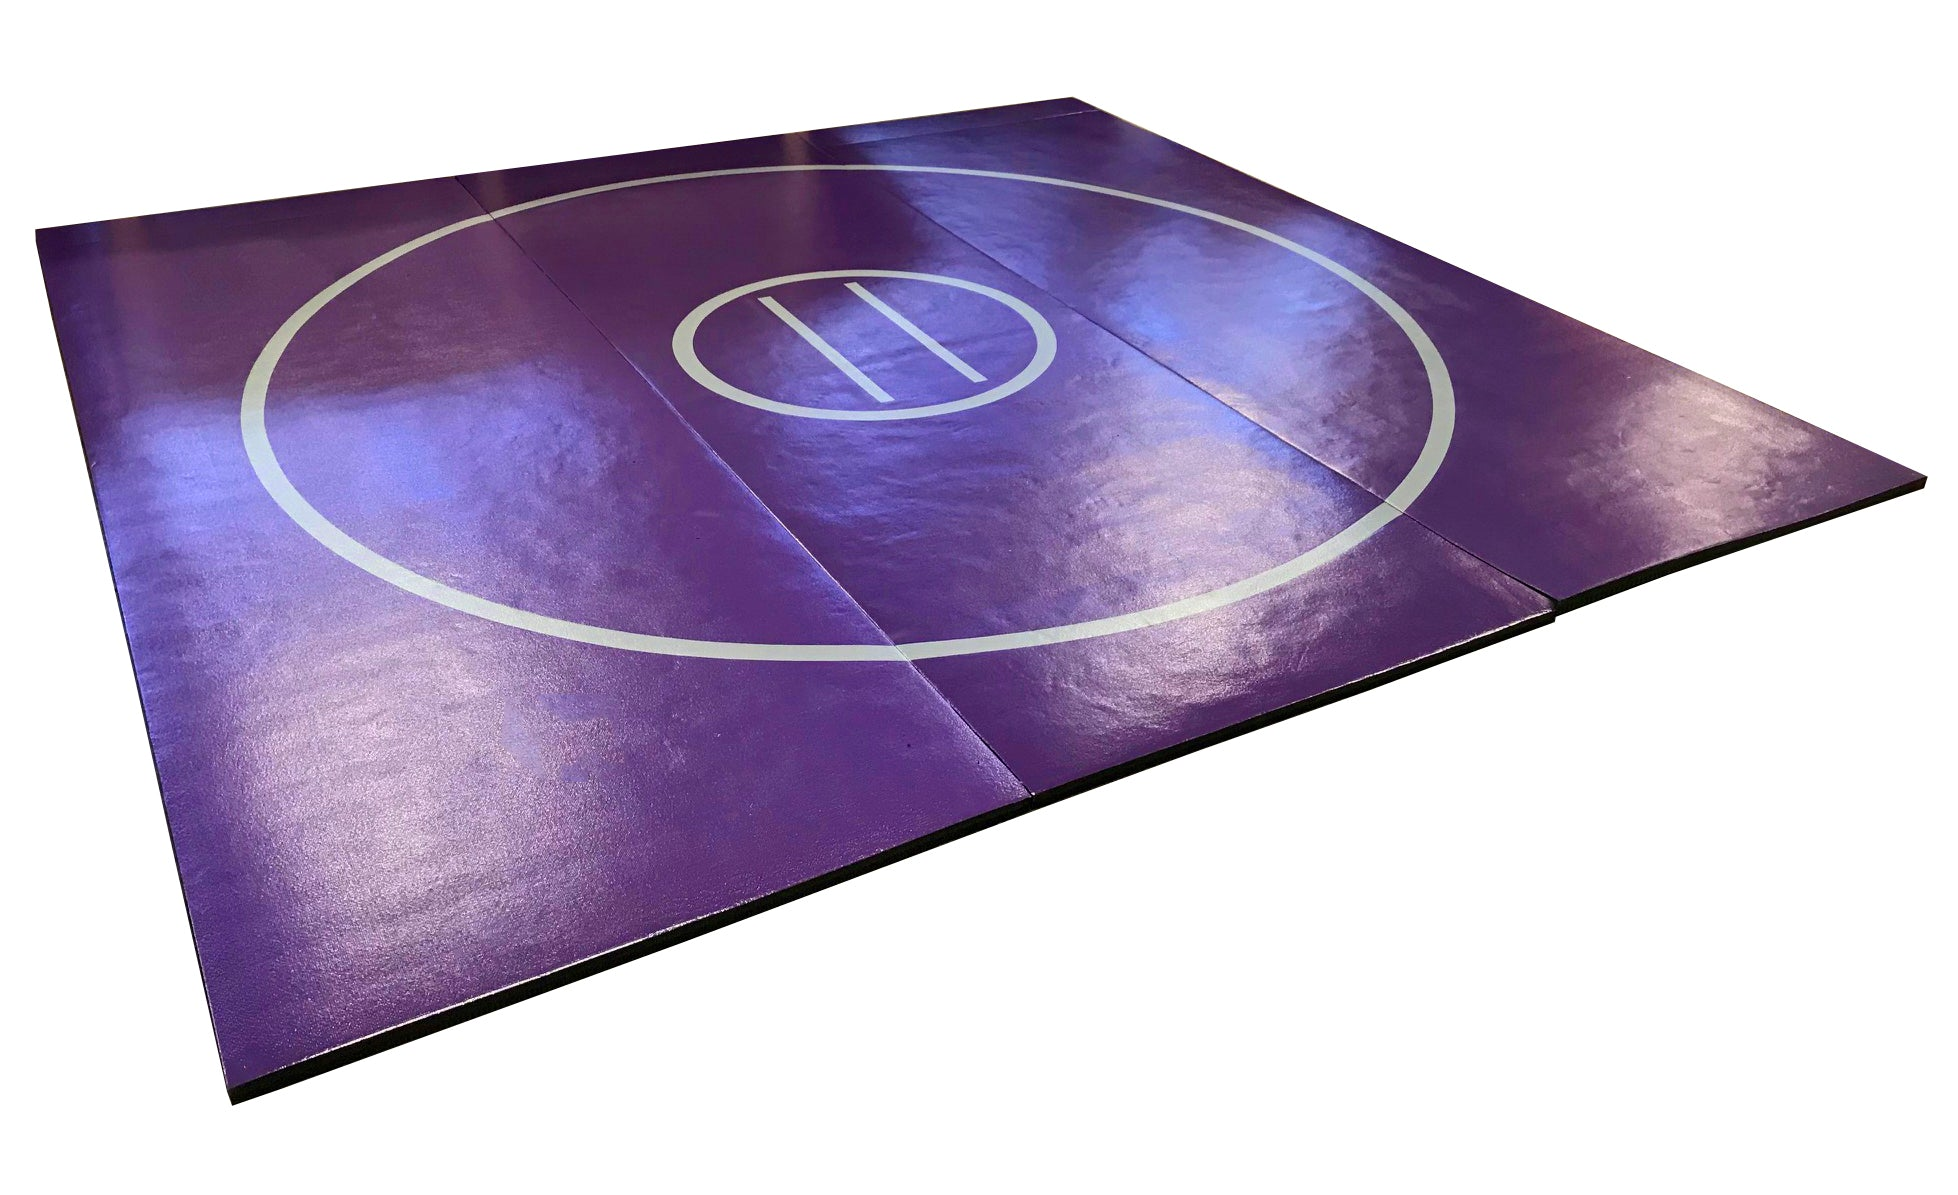 "12' x 12' x 1 3/8"" Purple and Gray Roll-Up Wrestling Mat"